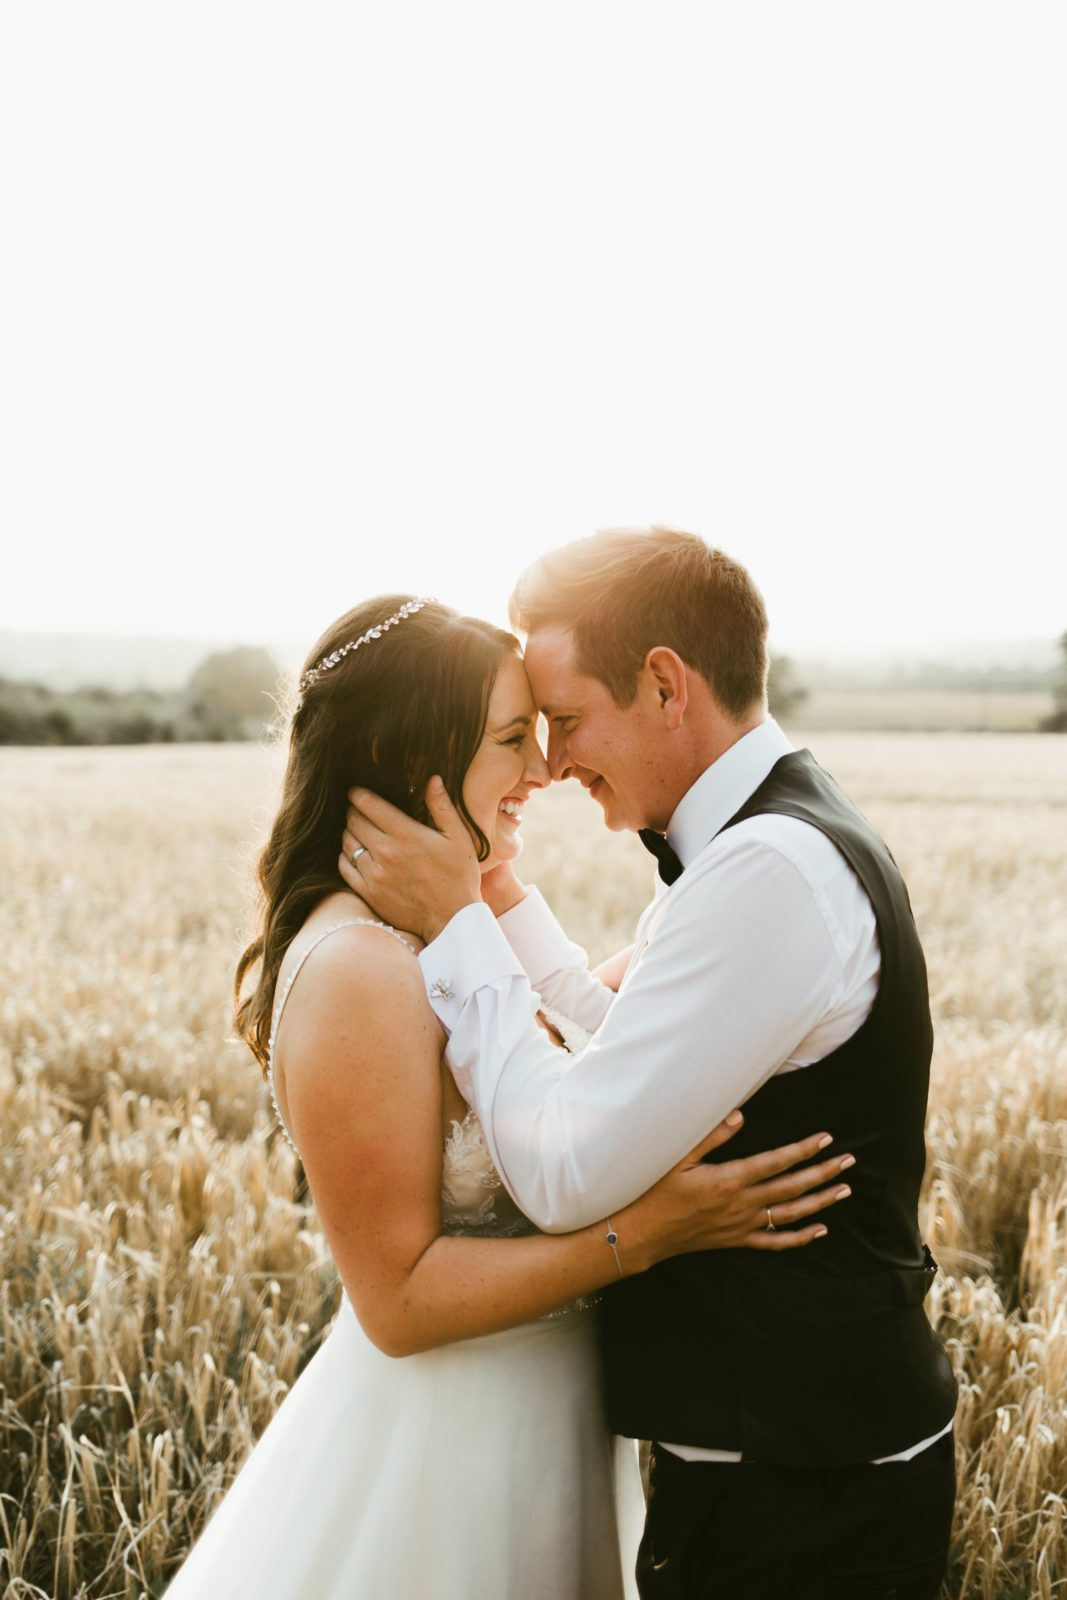 romatic-wedding-photography-photographer-uk-golden-hour-couple